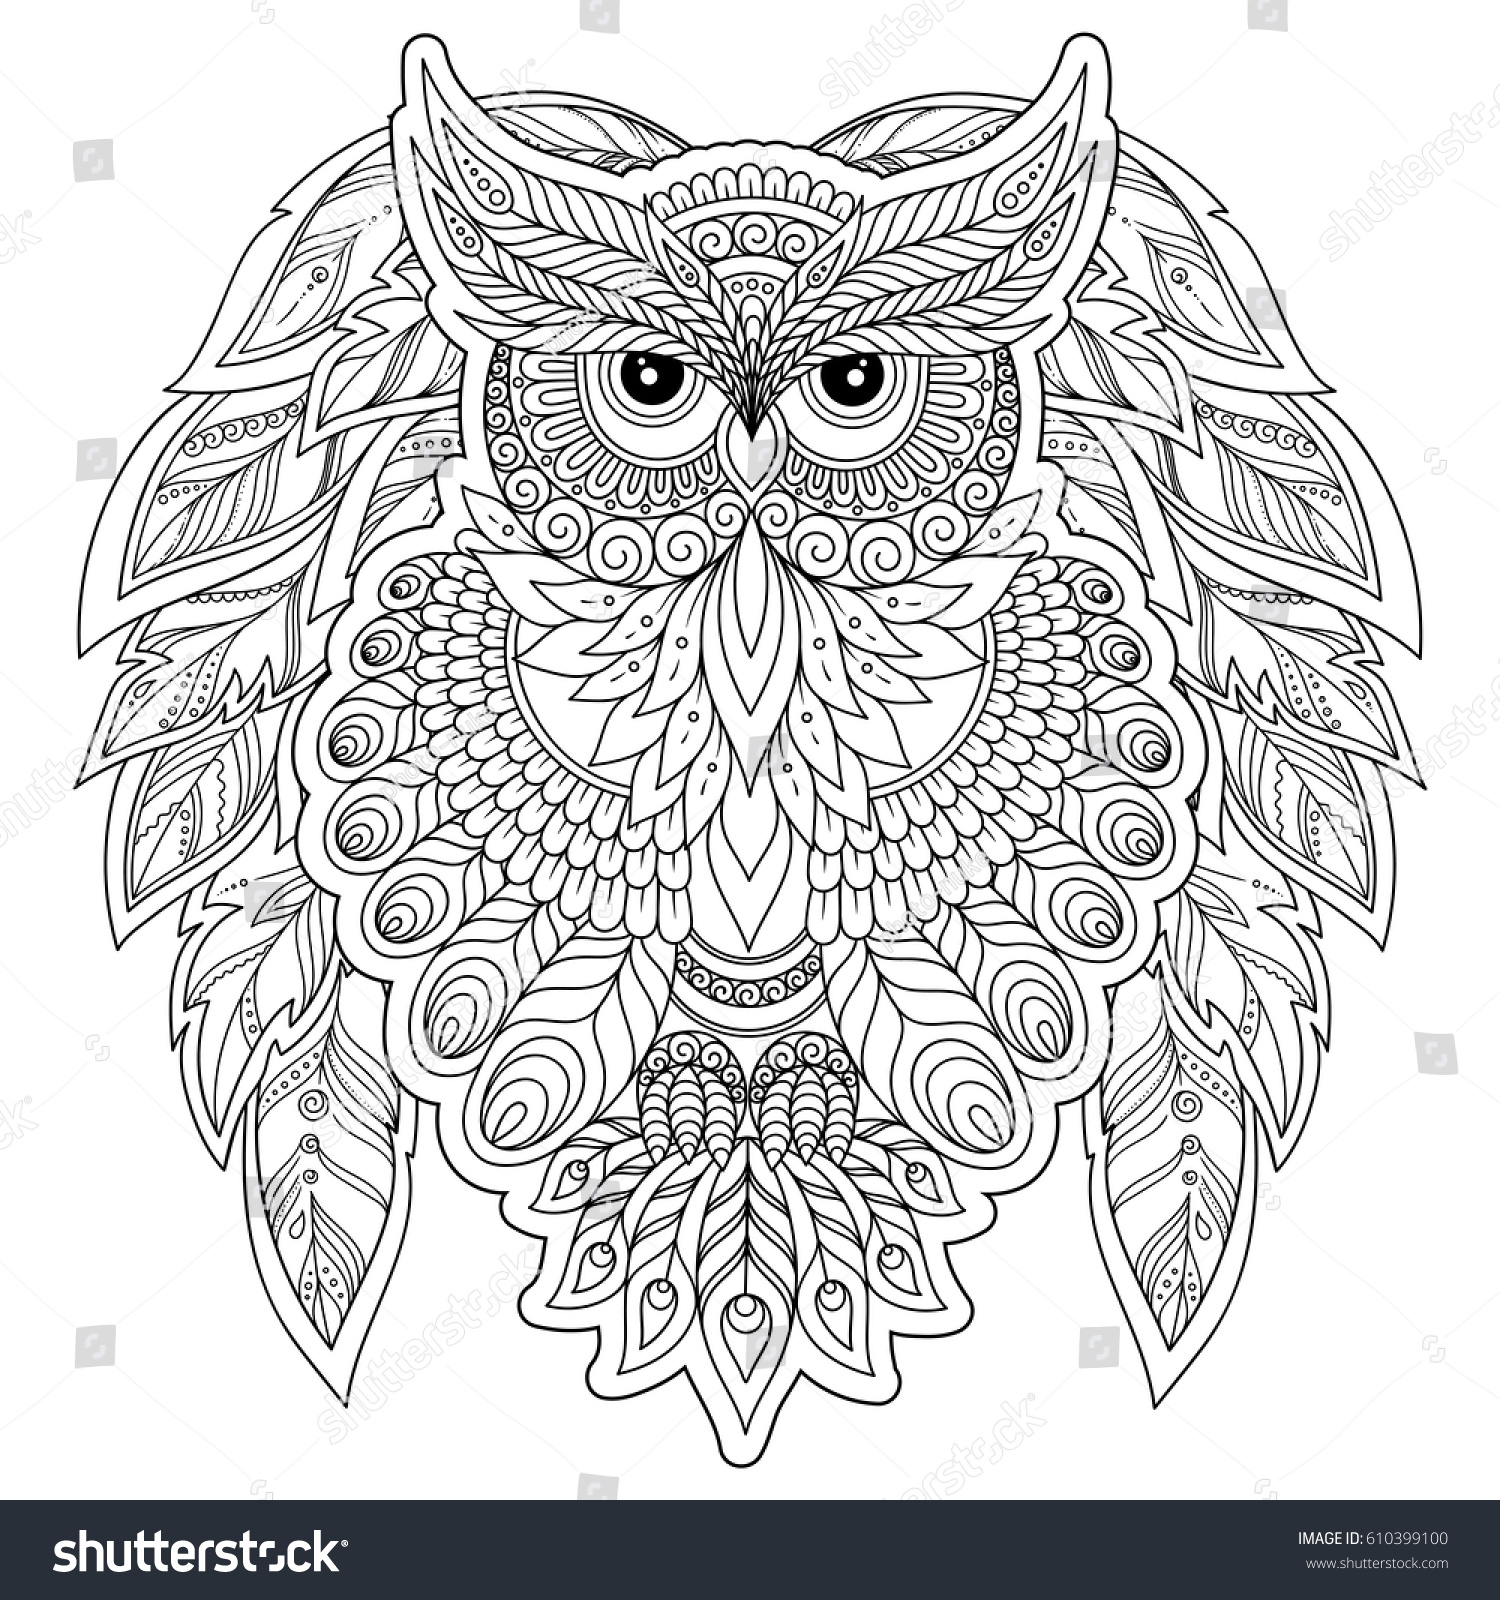 coloring book older children coloring stock vector 610399100